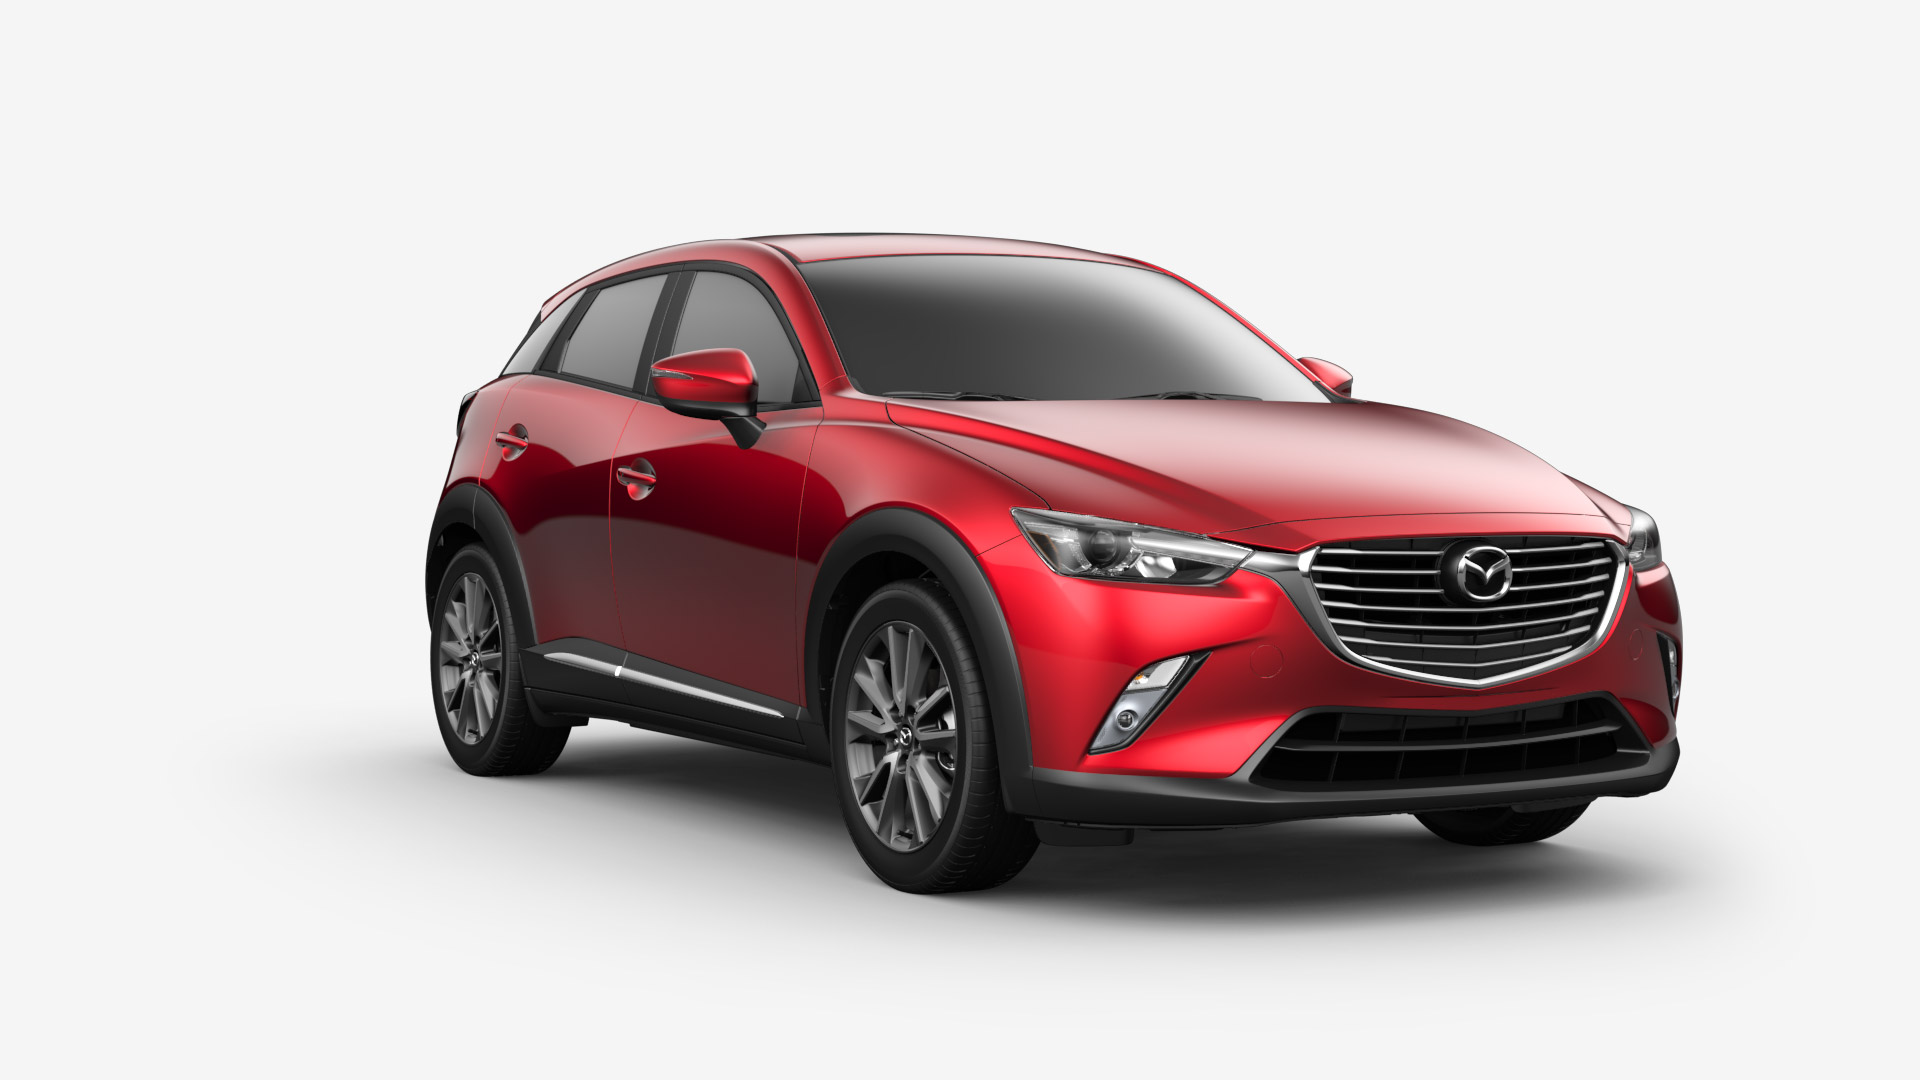 2018 mazda cx 3 subcompact crossover compact suv mazda usa autos post. Black Bedroom Furniture Sets. Home Design Ideas